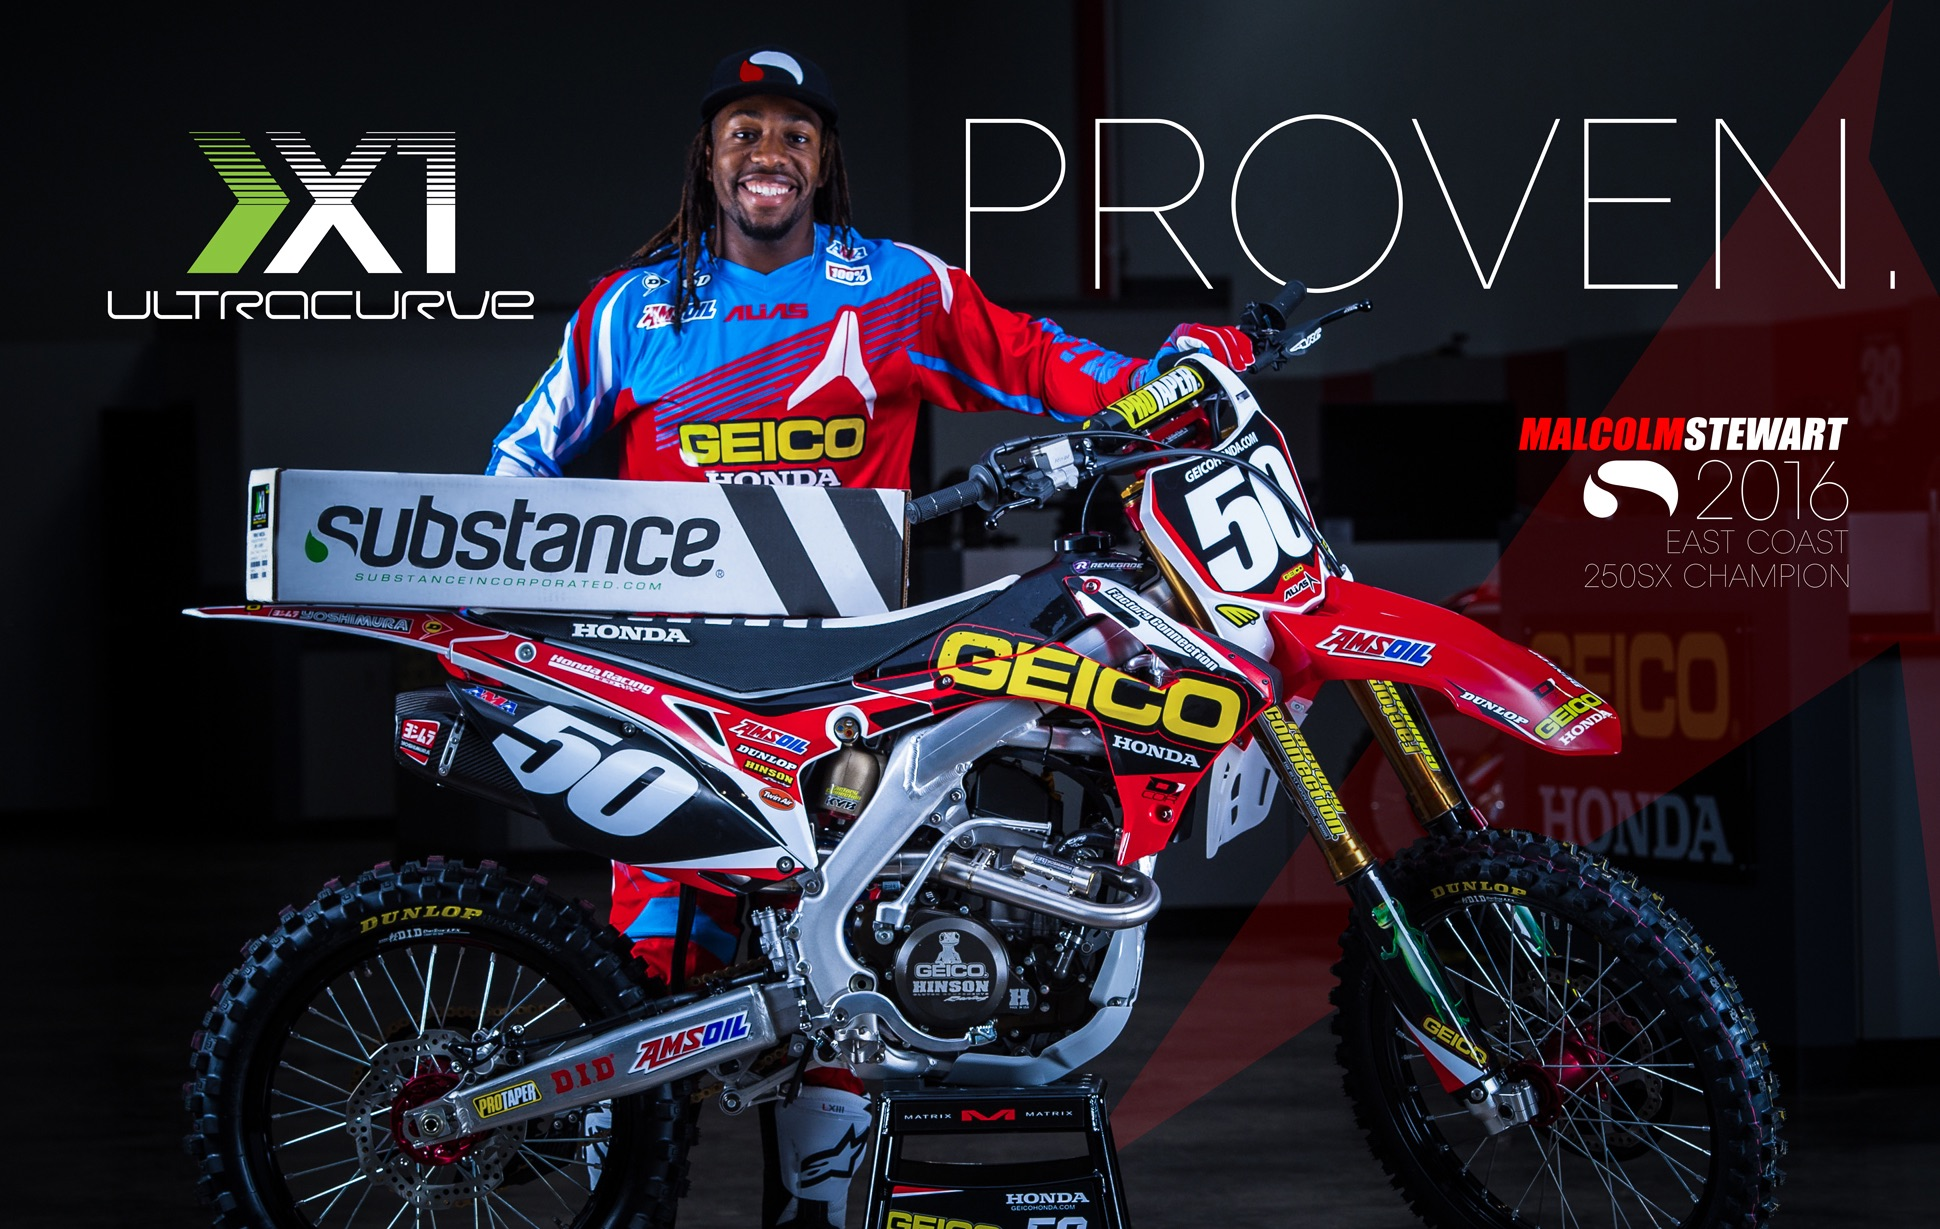 Malcom Stewart 2016 East Coast 250SX Champion Substance Ultracurve X1